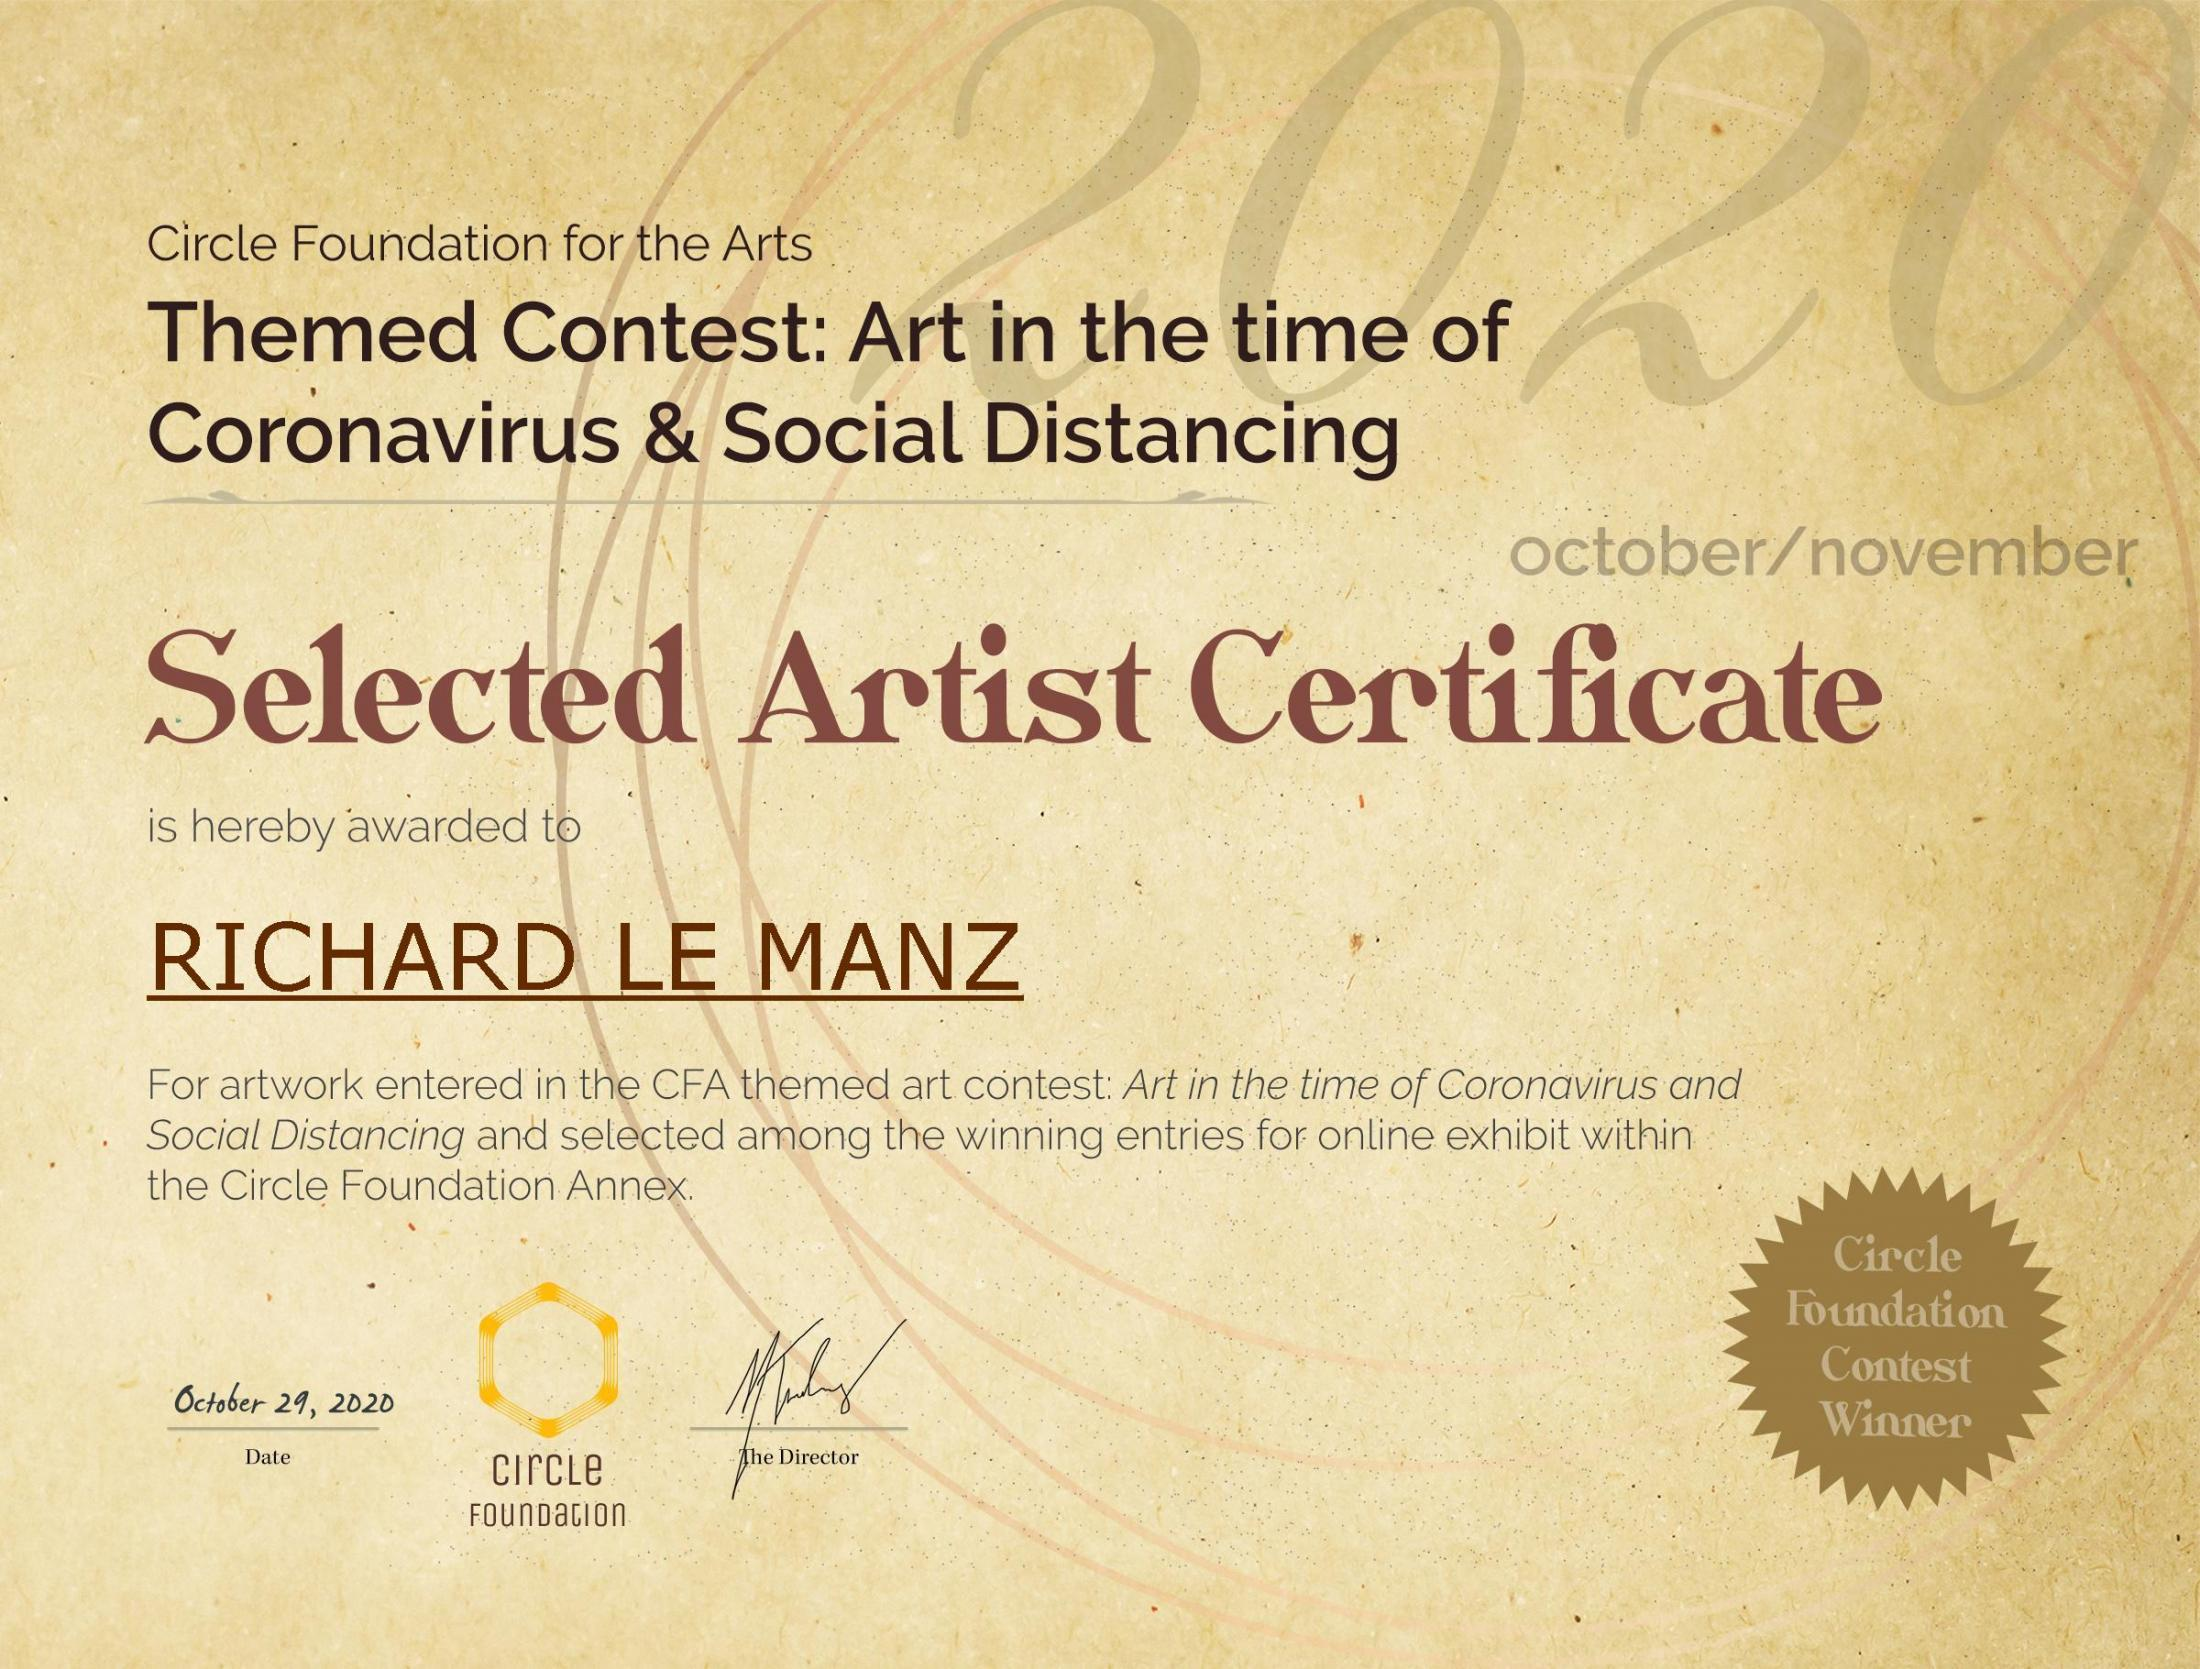 Art and Documentary Photography - Loading CFA_Contest_Certificate_SelectedArtist_RICHARD_LE_MANZ.jpg